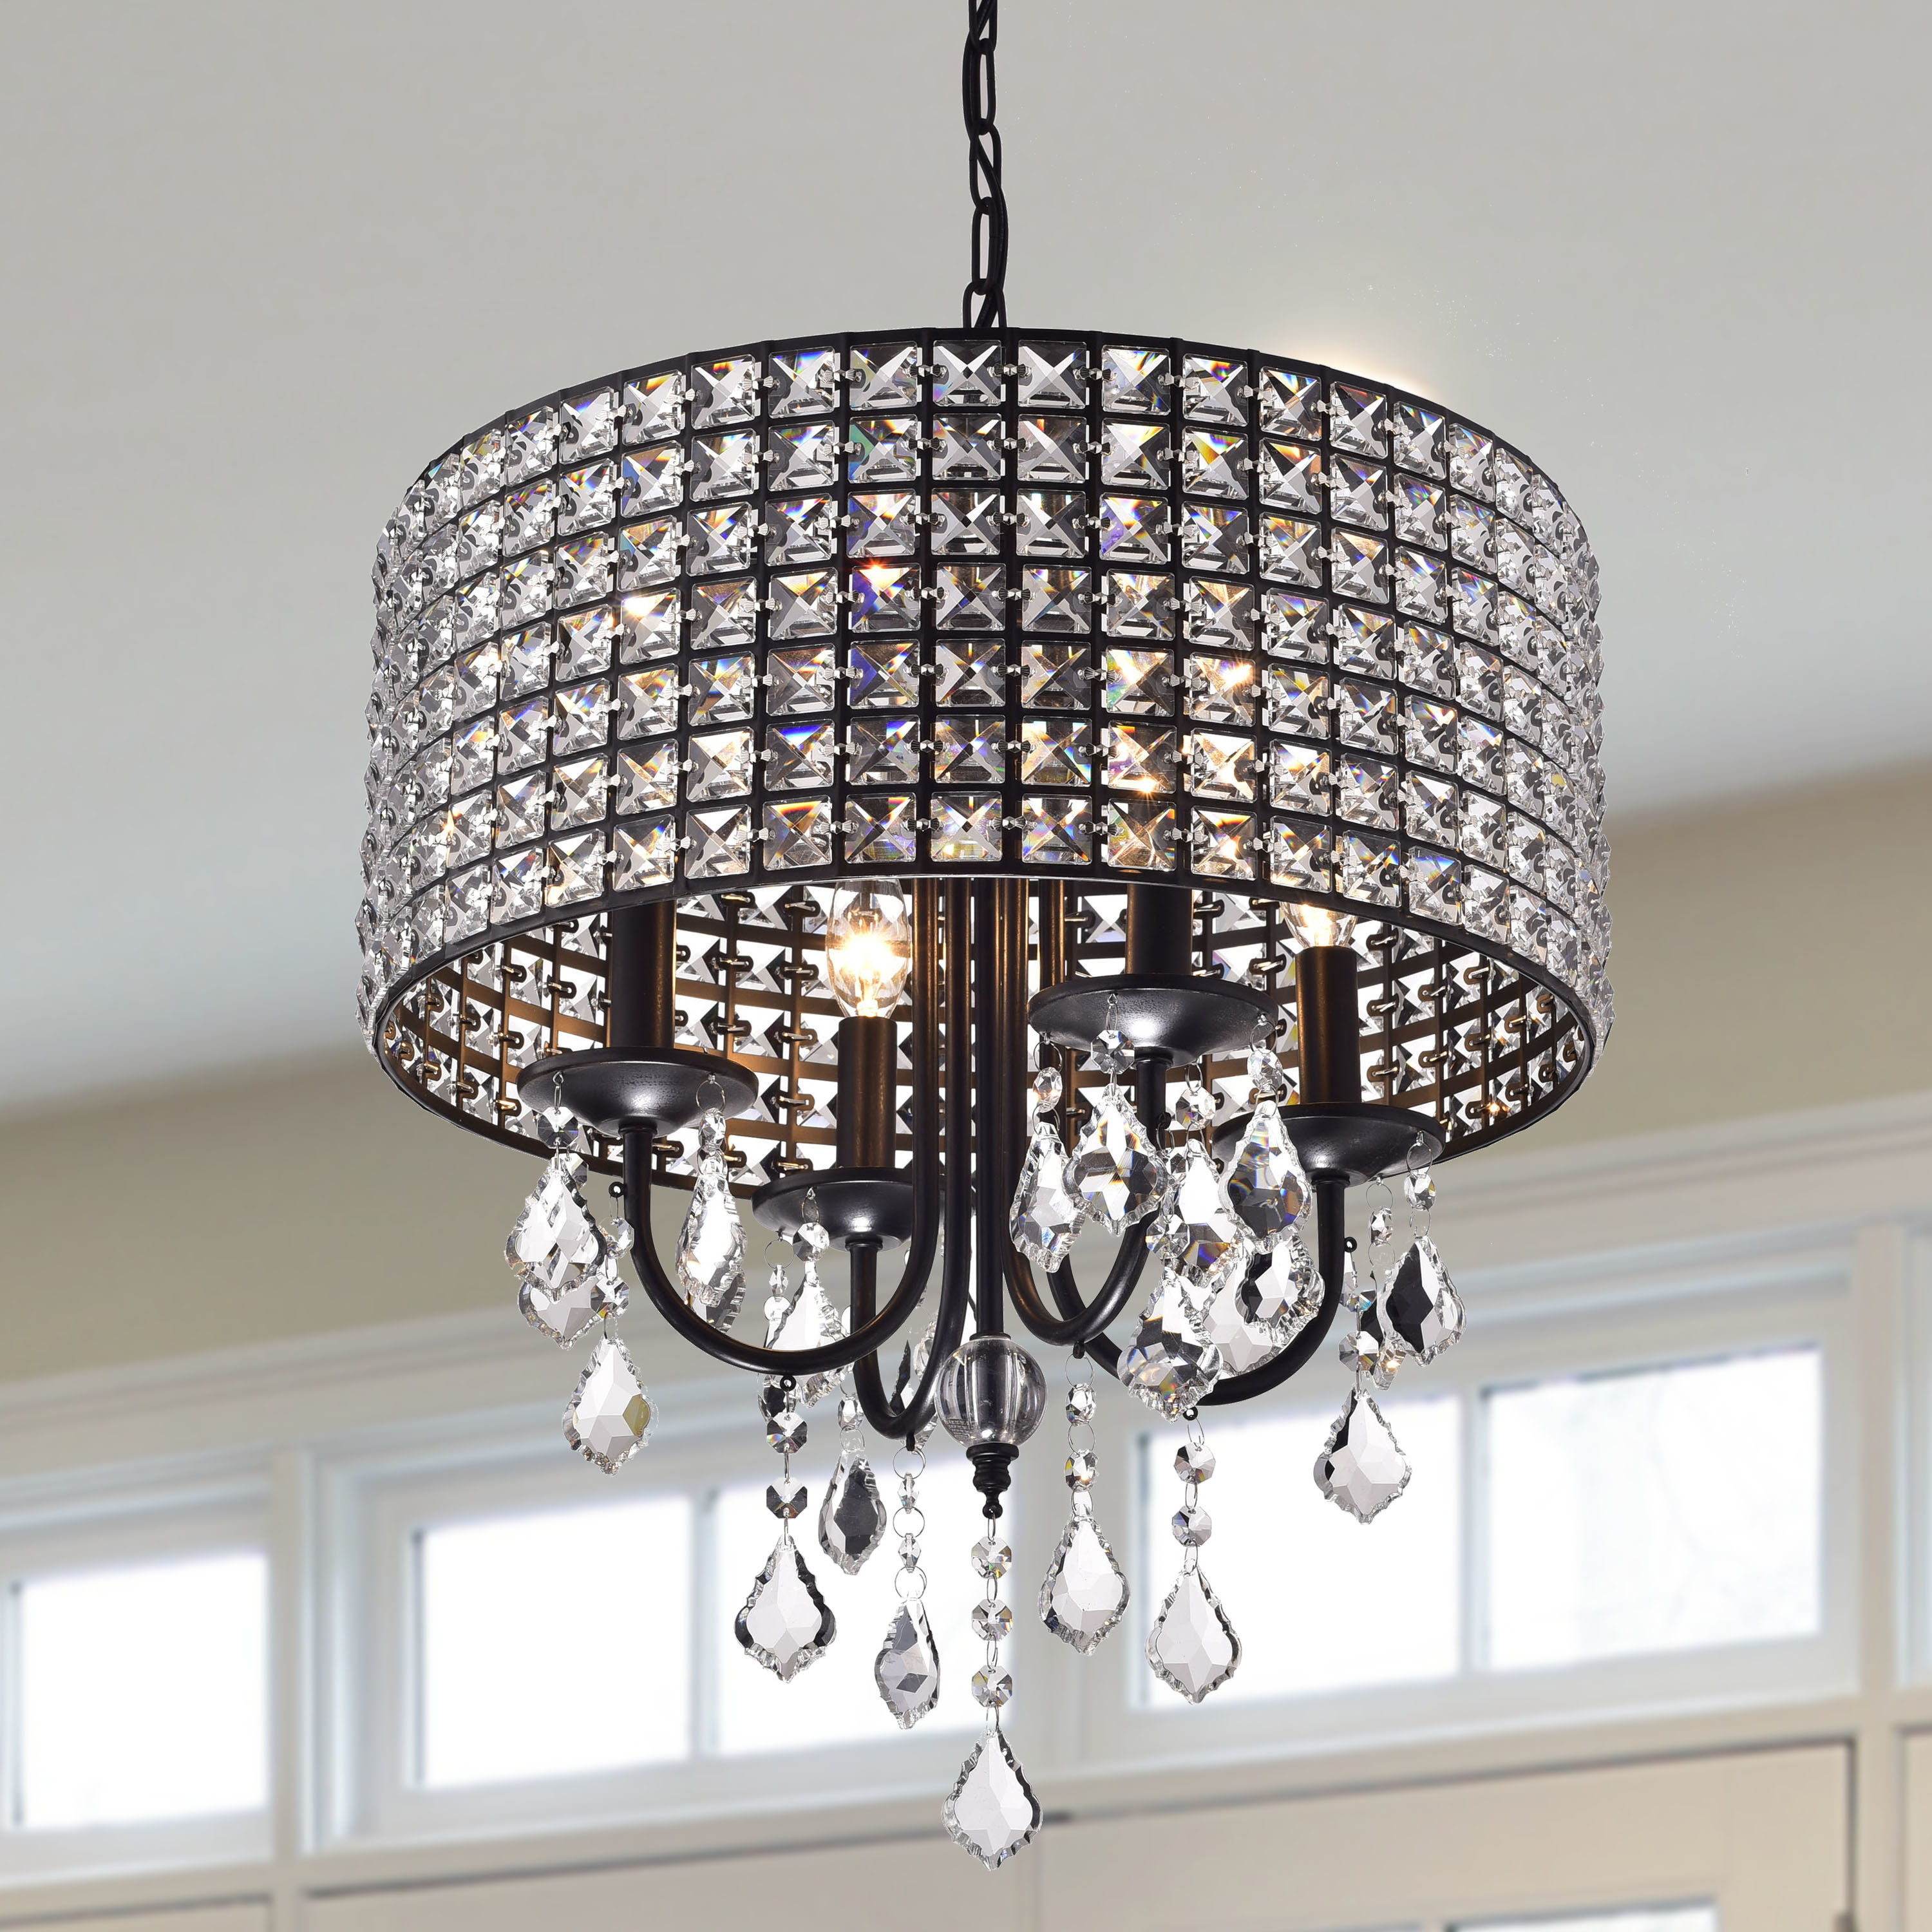 Albano 4 Light Crystal Chandelier Intended For Sinead 4 Light Chandeliers (View 4 of 30)